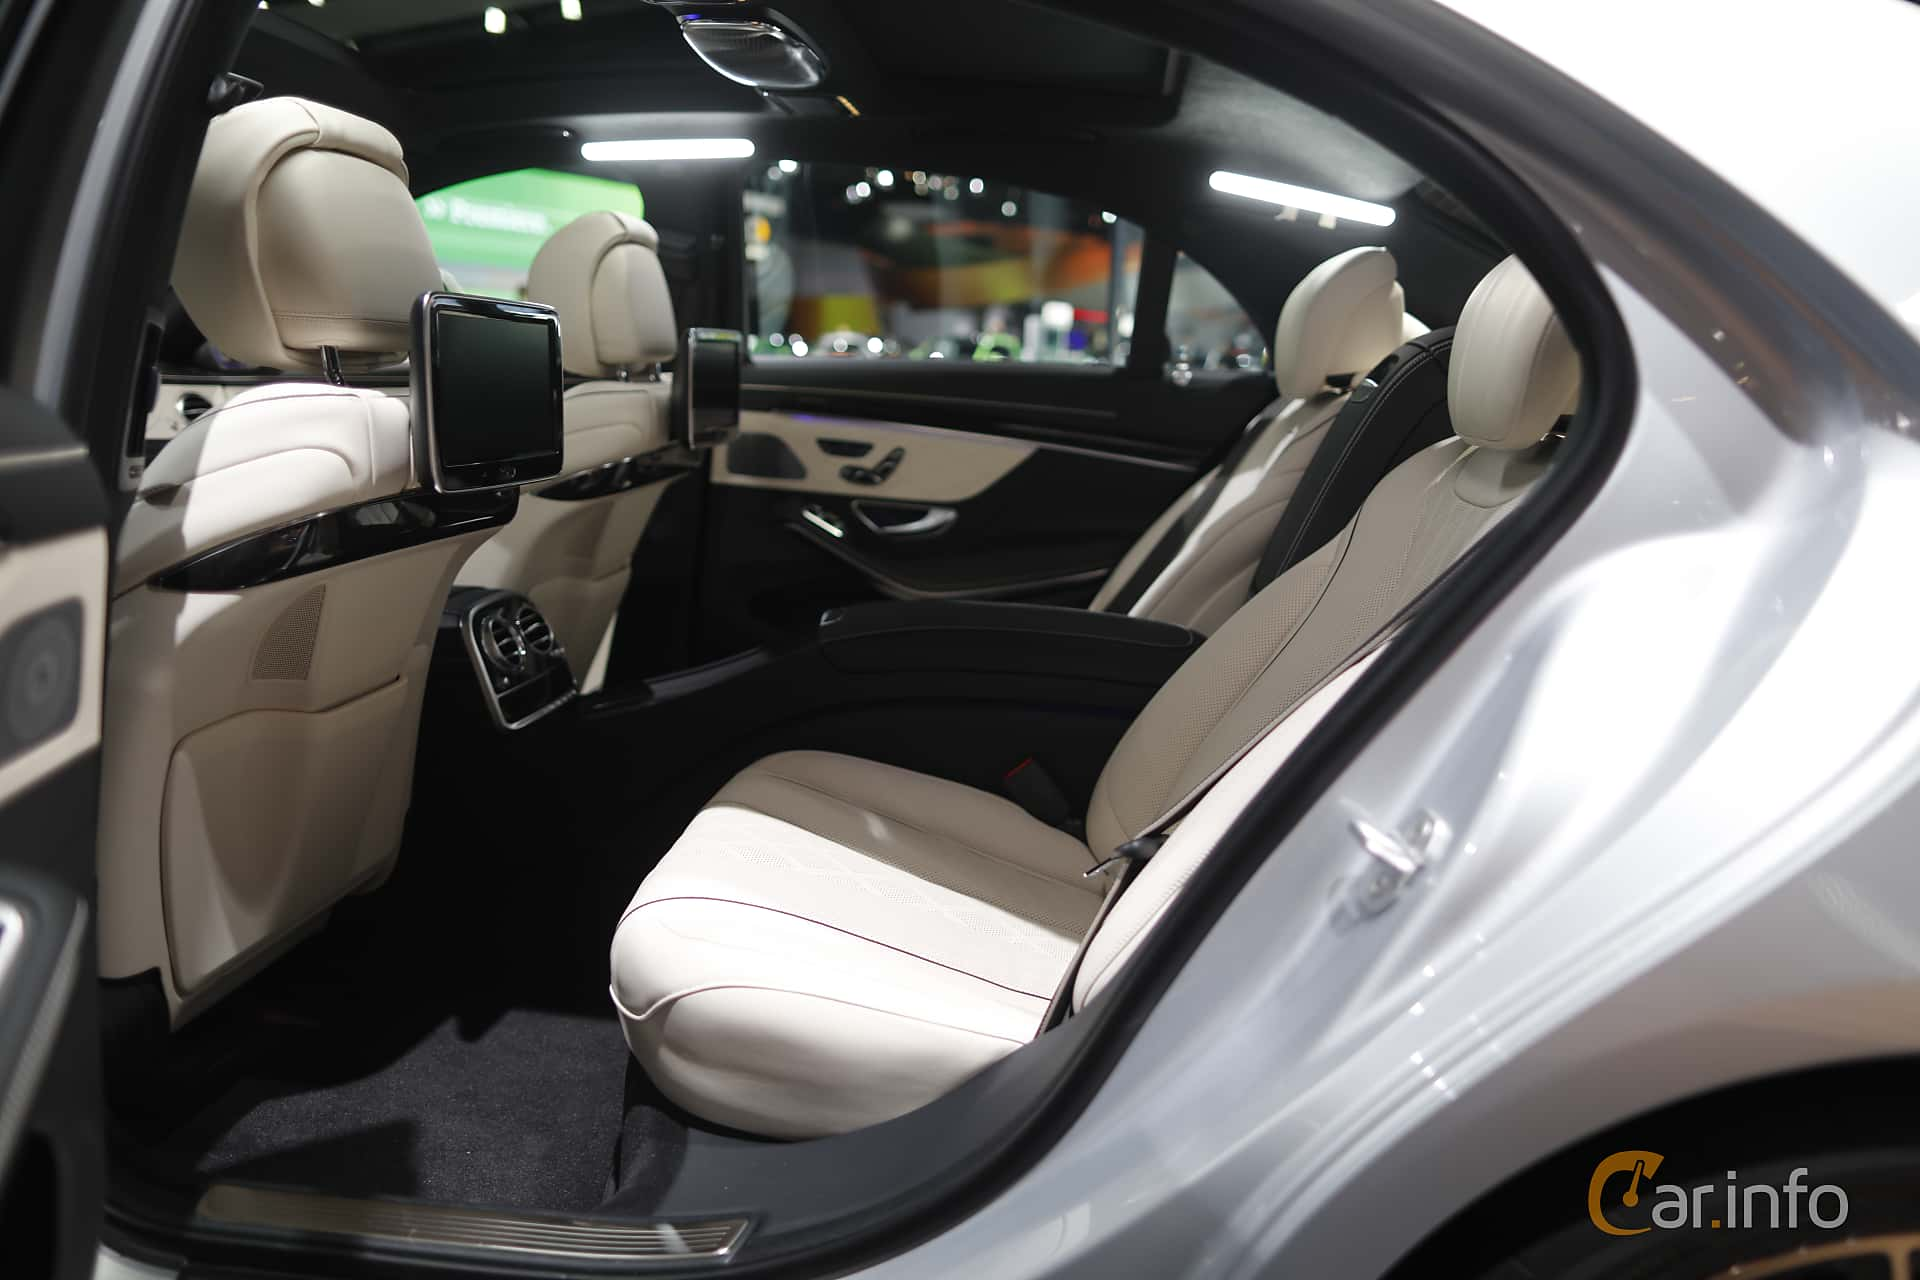 Interior of Mercedes-Benz S 500 e L 3.0 V6 7G-Tronic Plus, 442ps, 2017 at North American International Auto Show 2017